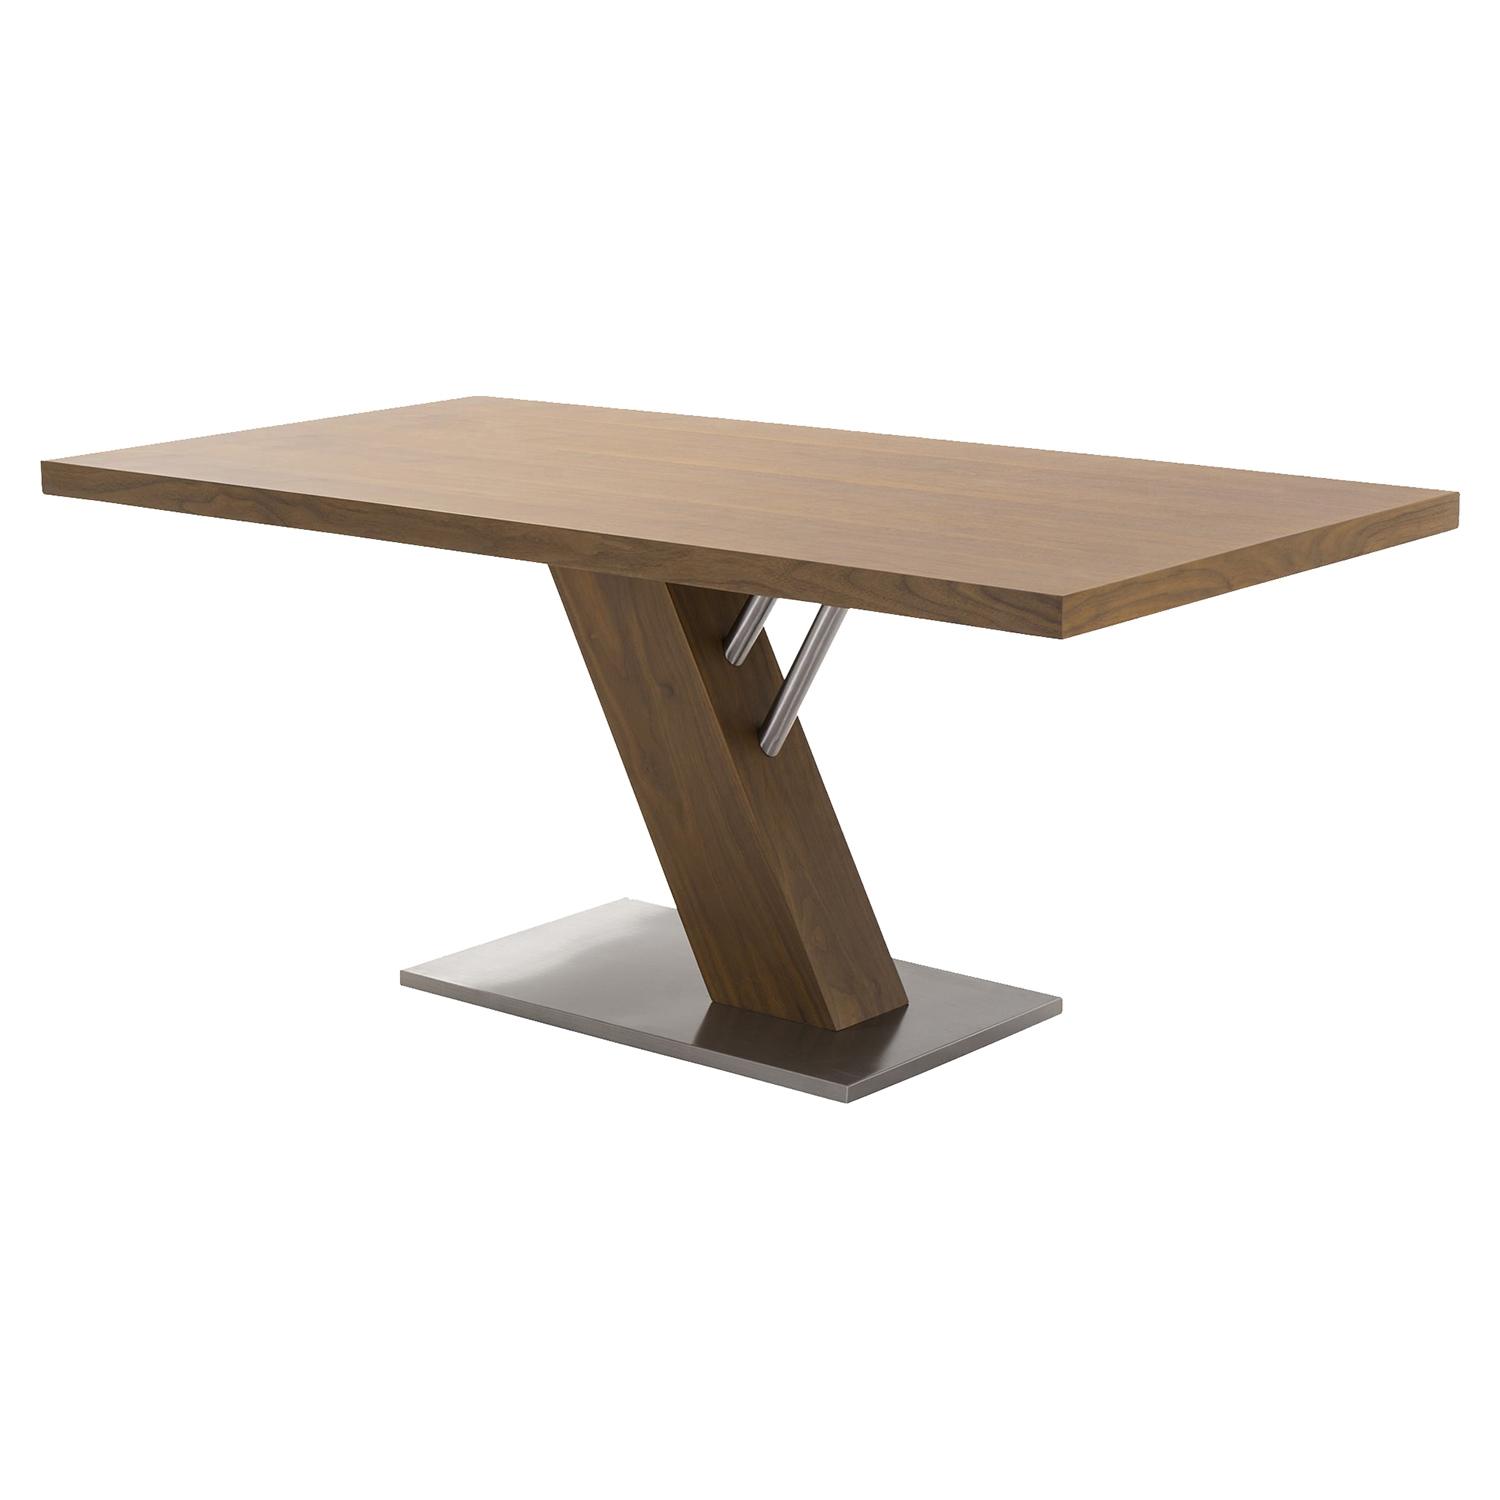 Fusion Contemporary Dining Table - Walnut Wood Top, Stainless Steel Base - AL-LCFUDIWATO